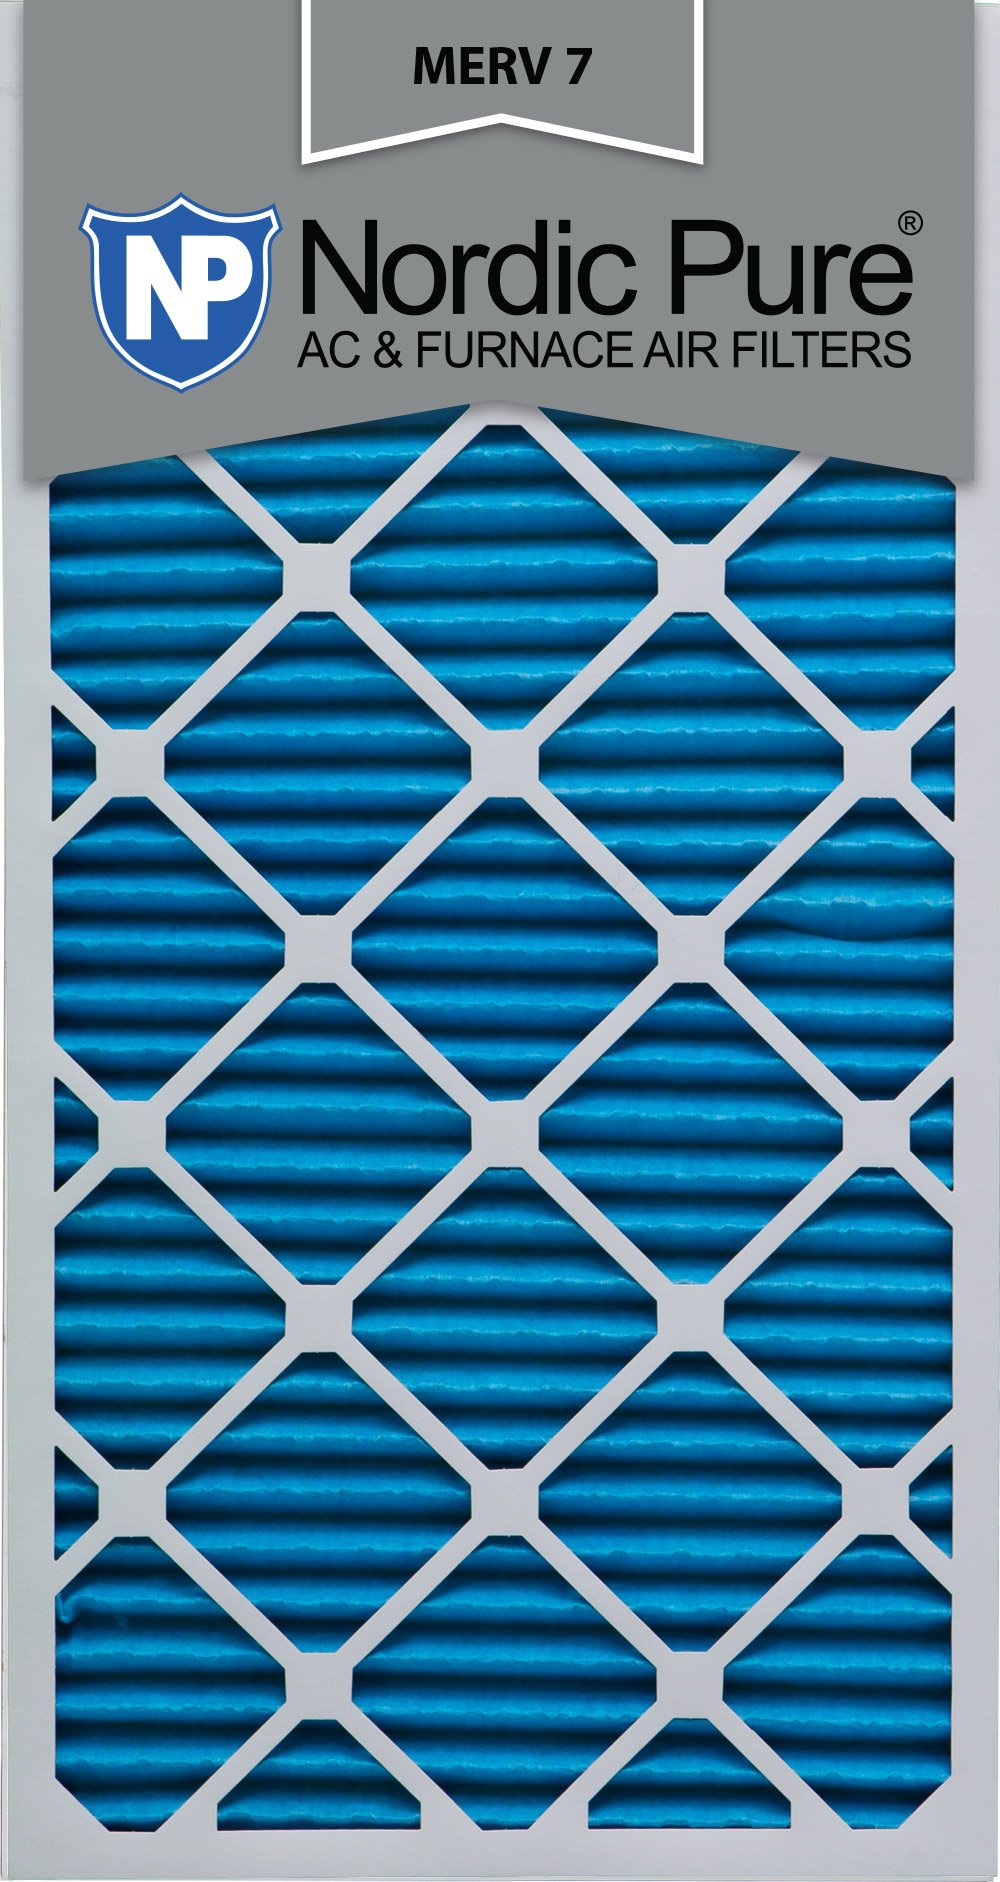 Nordic Pure 20x30x1M7-2 MERV 7 AC Furnace Filter 20x30x1 Pleated Merv 7 AC Furnace Filters Qty 2